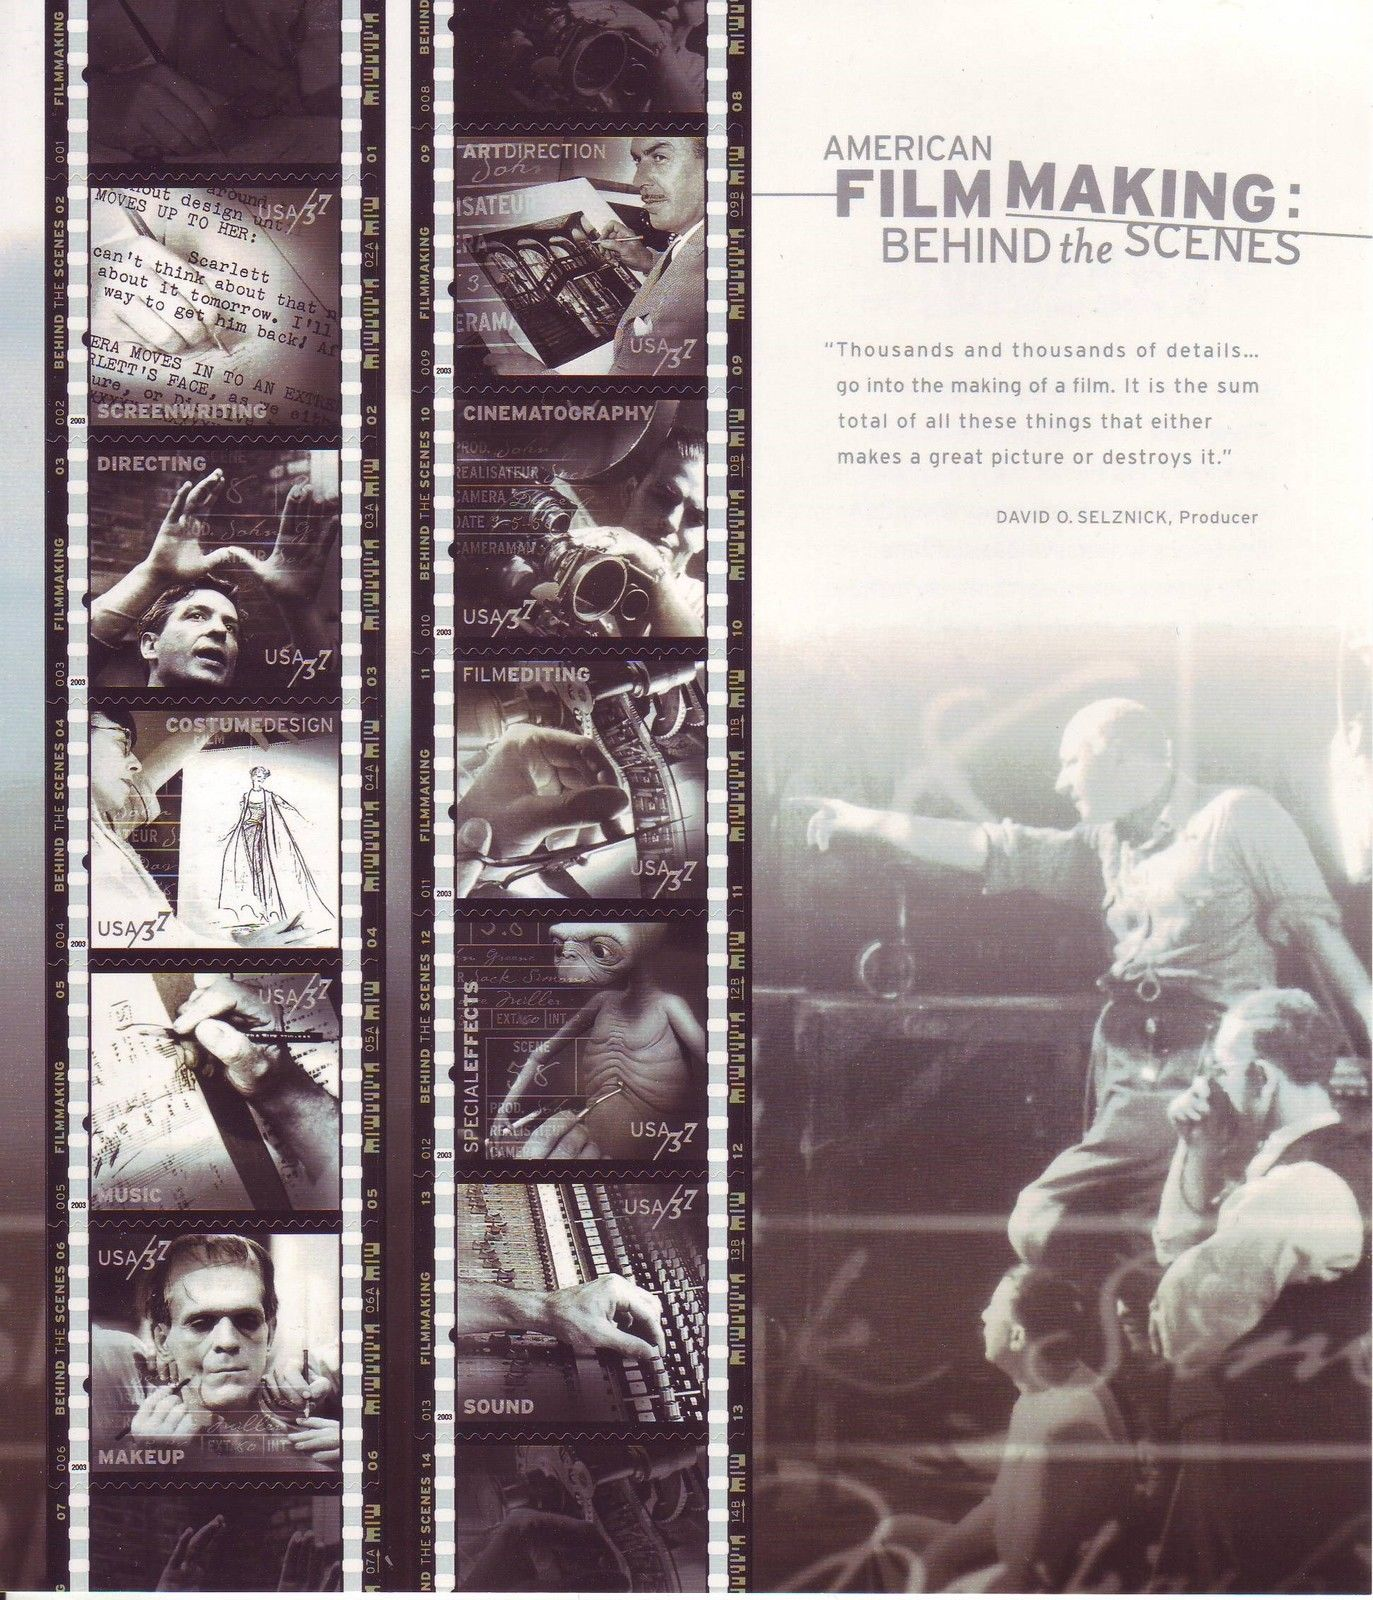 2003 US - Sc3772 37¢ Filmaking Behind the Scenes Sheet (10) MNH